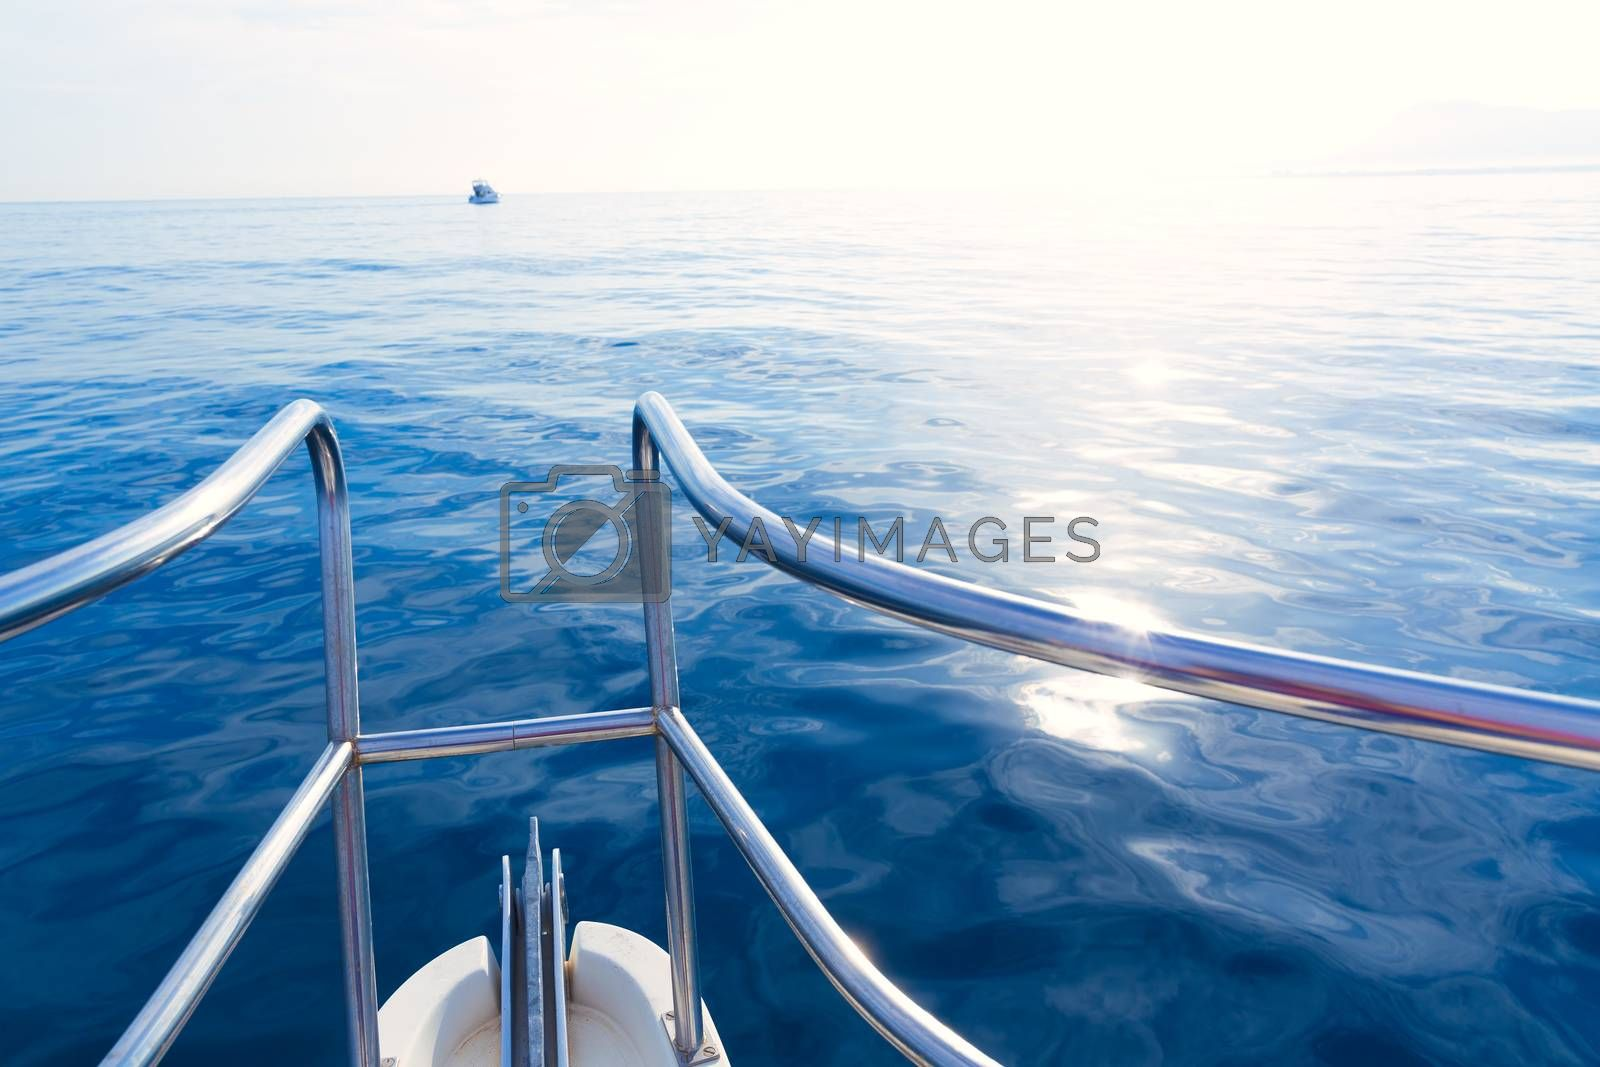 Boat bow sailing in blue calm sea ocean at blue Mediterranean